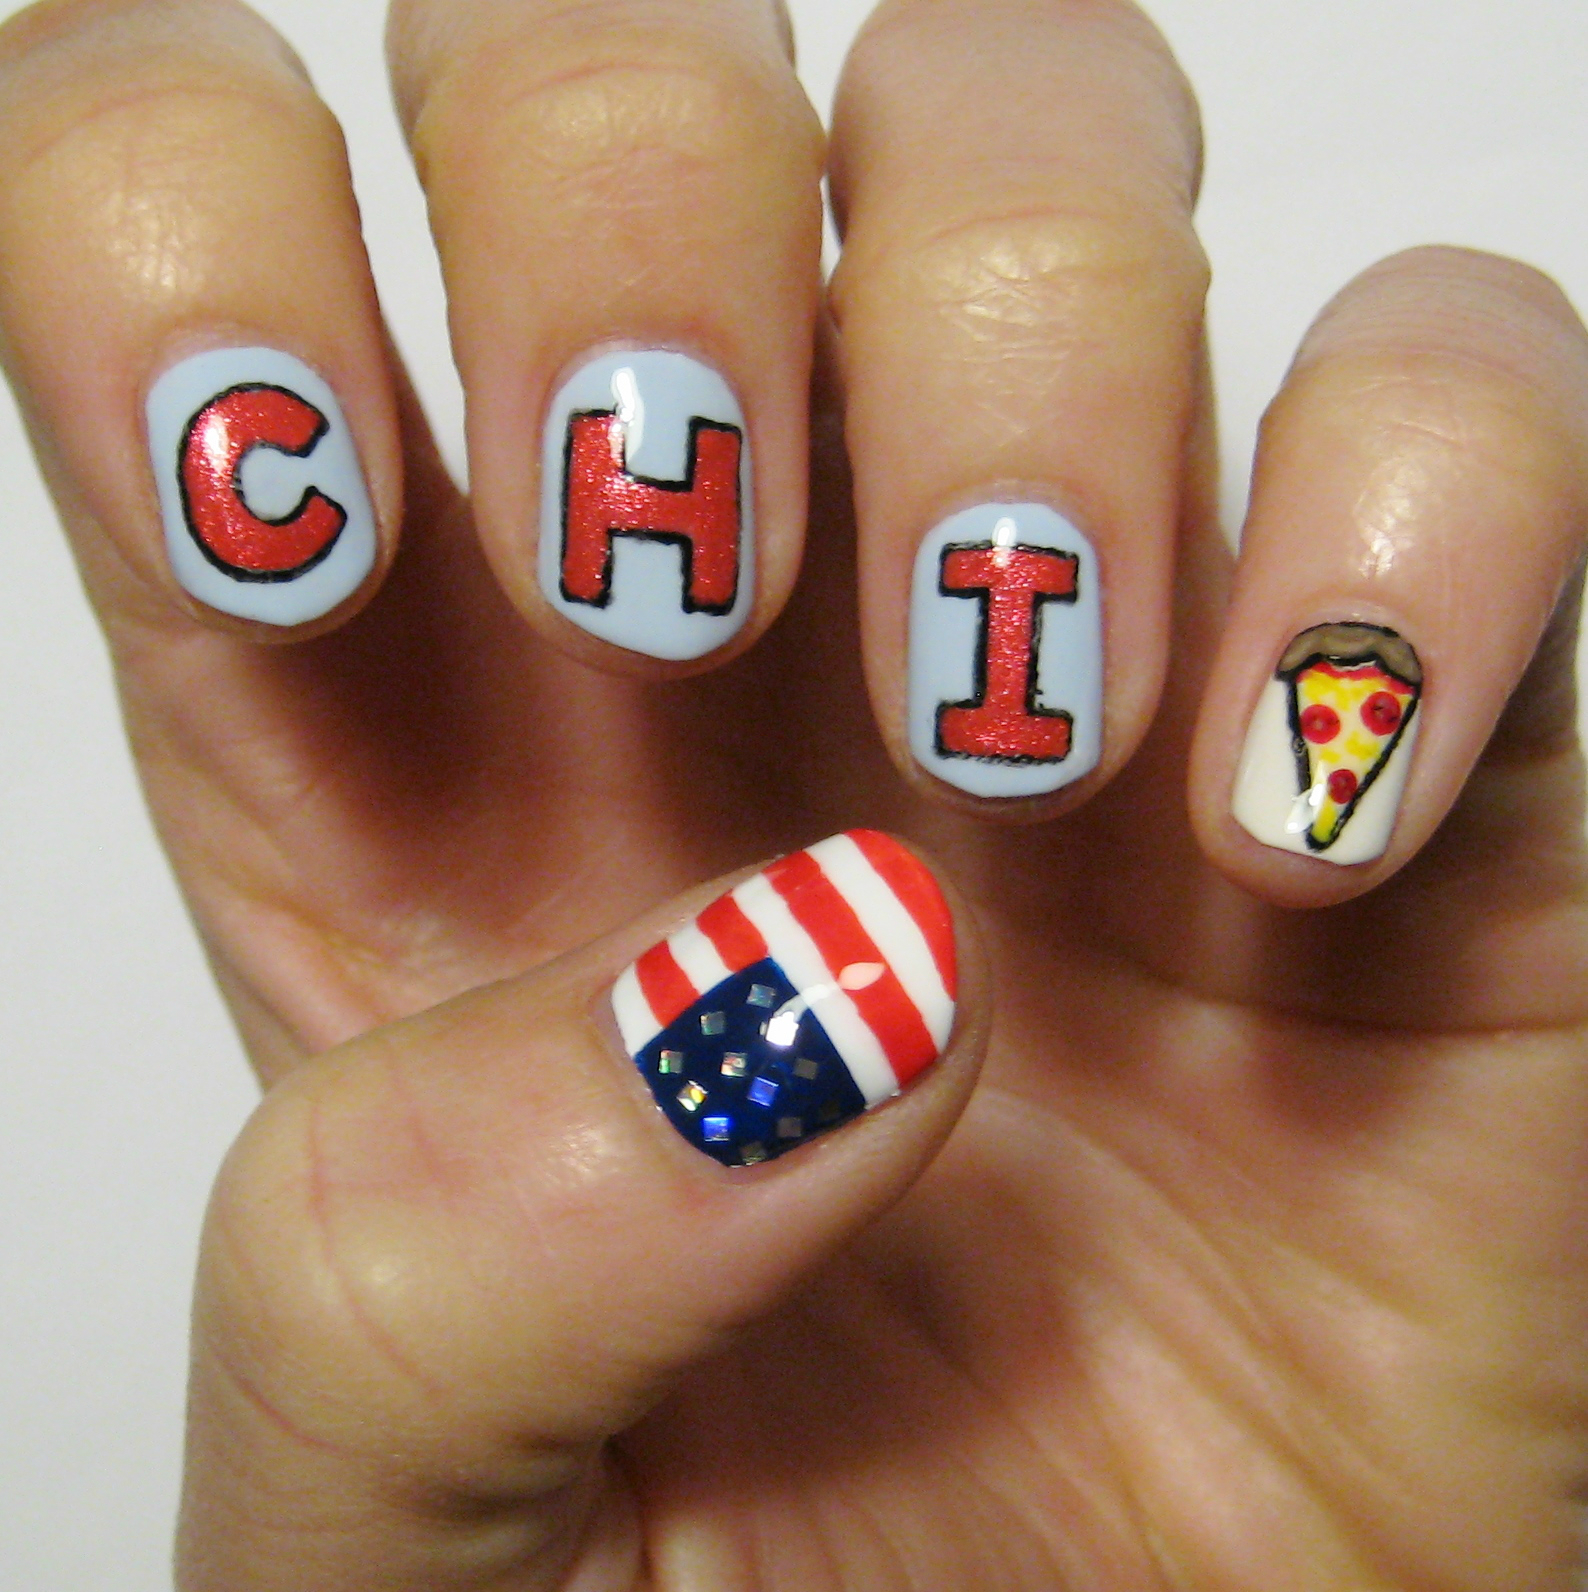 Dahlia Nails: Chicago Marathon Nails!